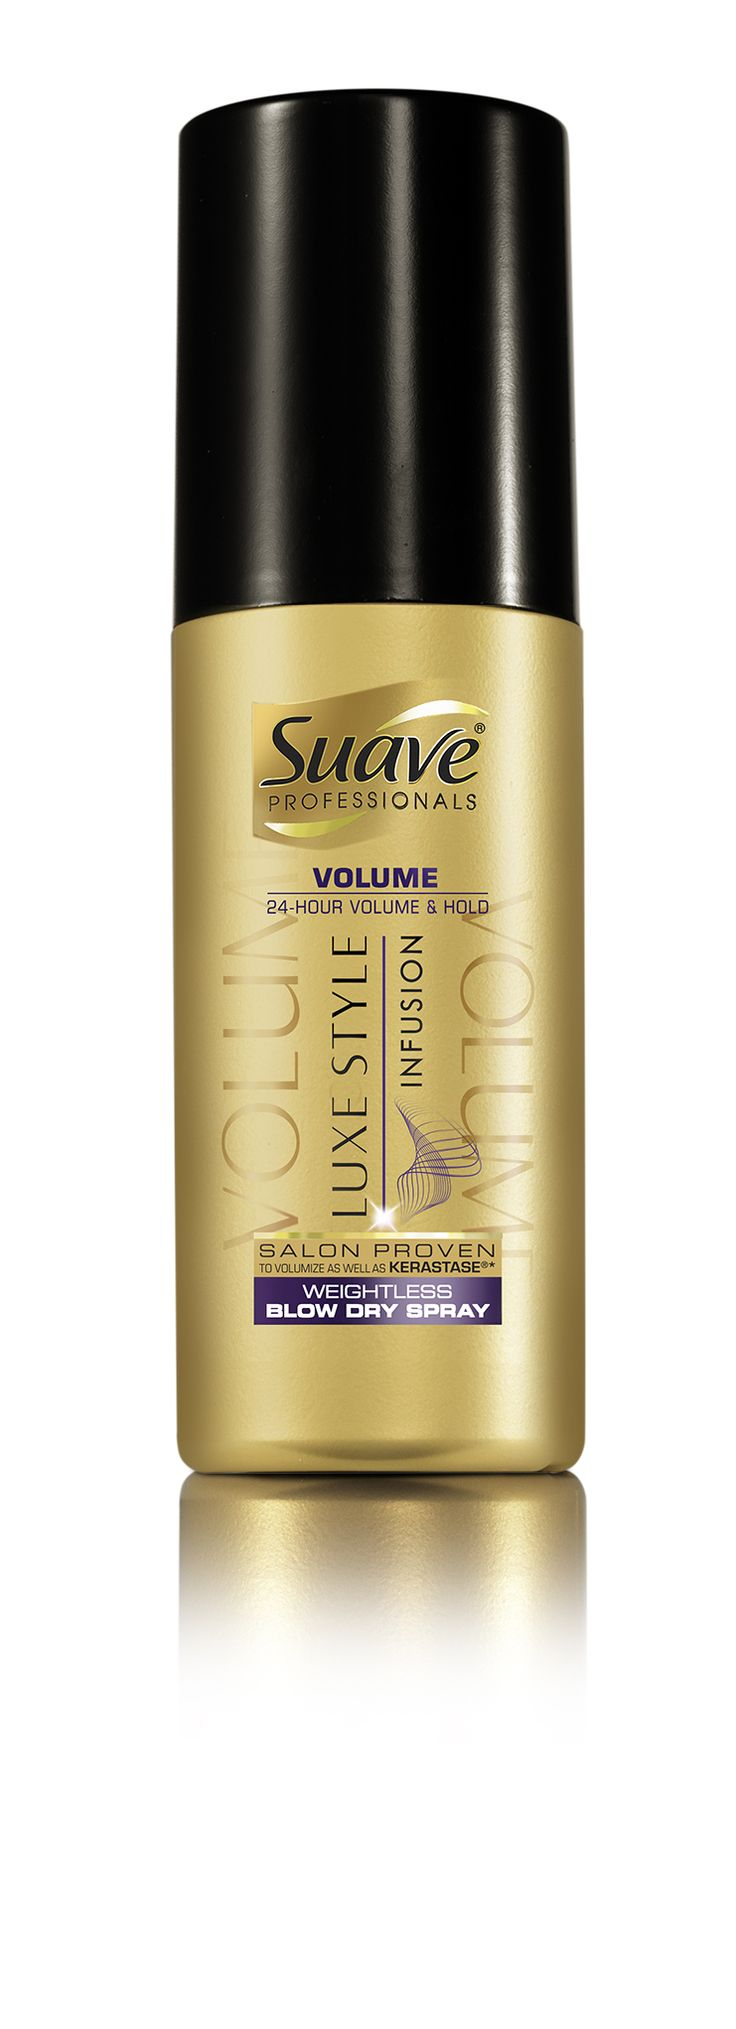 226 Best Favorite Suave Products Images On Pinterest A